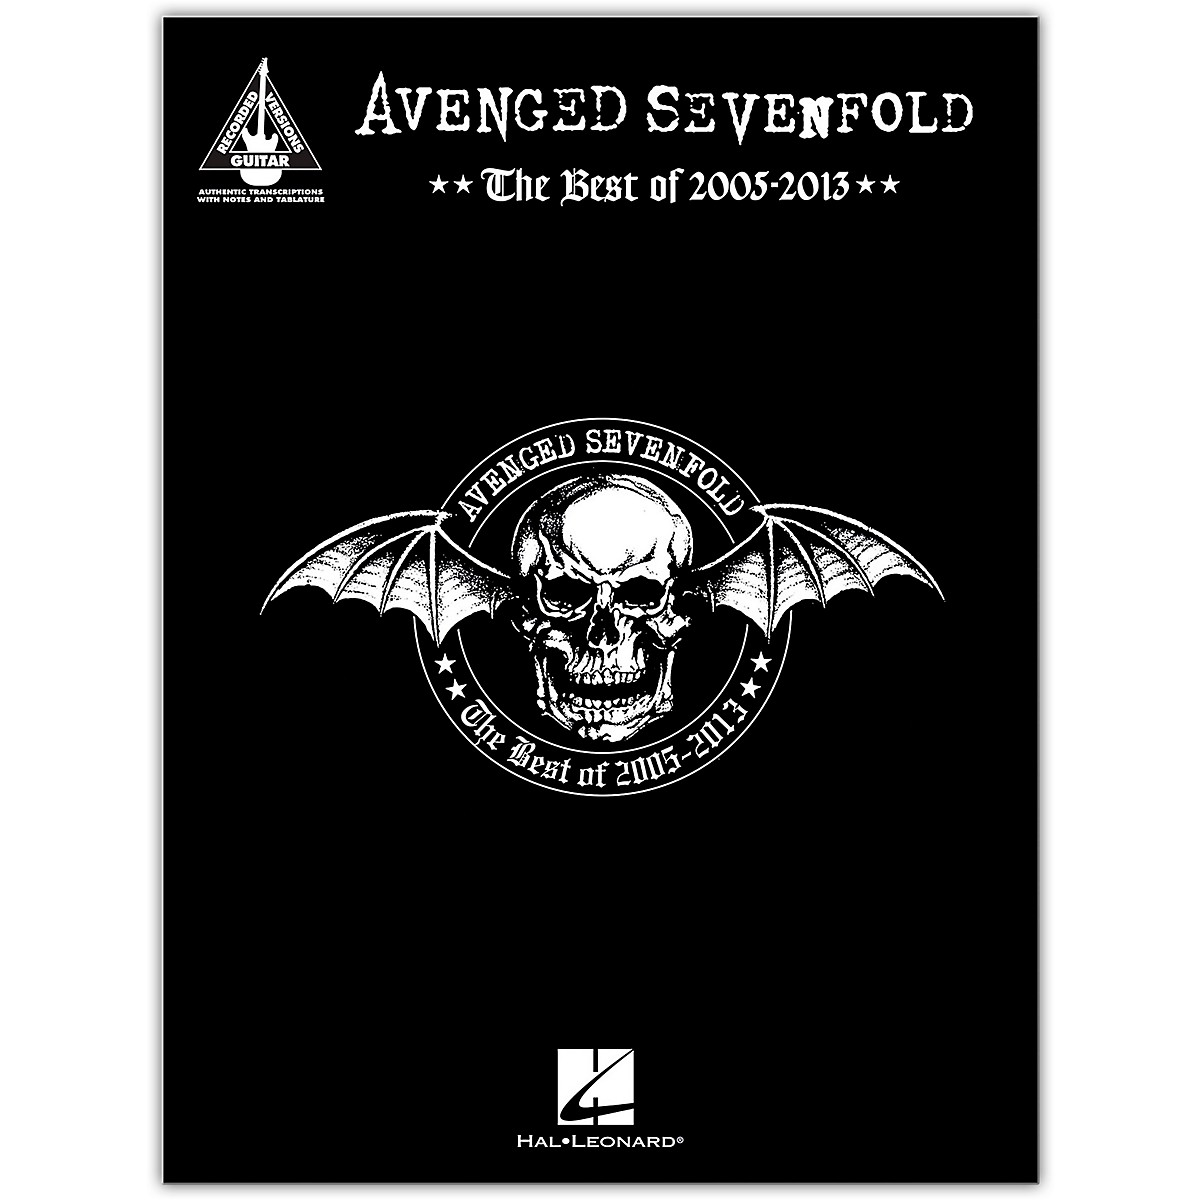 Hal Leonard Avenged Sevenfold - The Best of 2005-2013 Guitar Recorded Version Series Softcover by Avenged Sevenfold